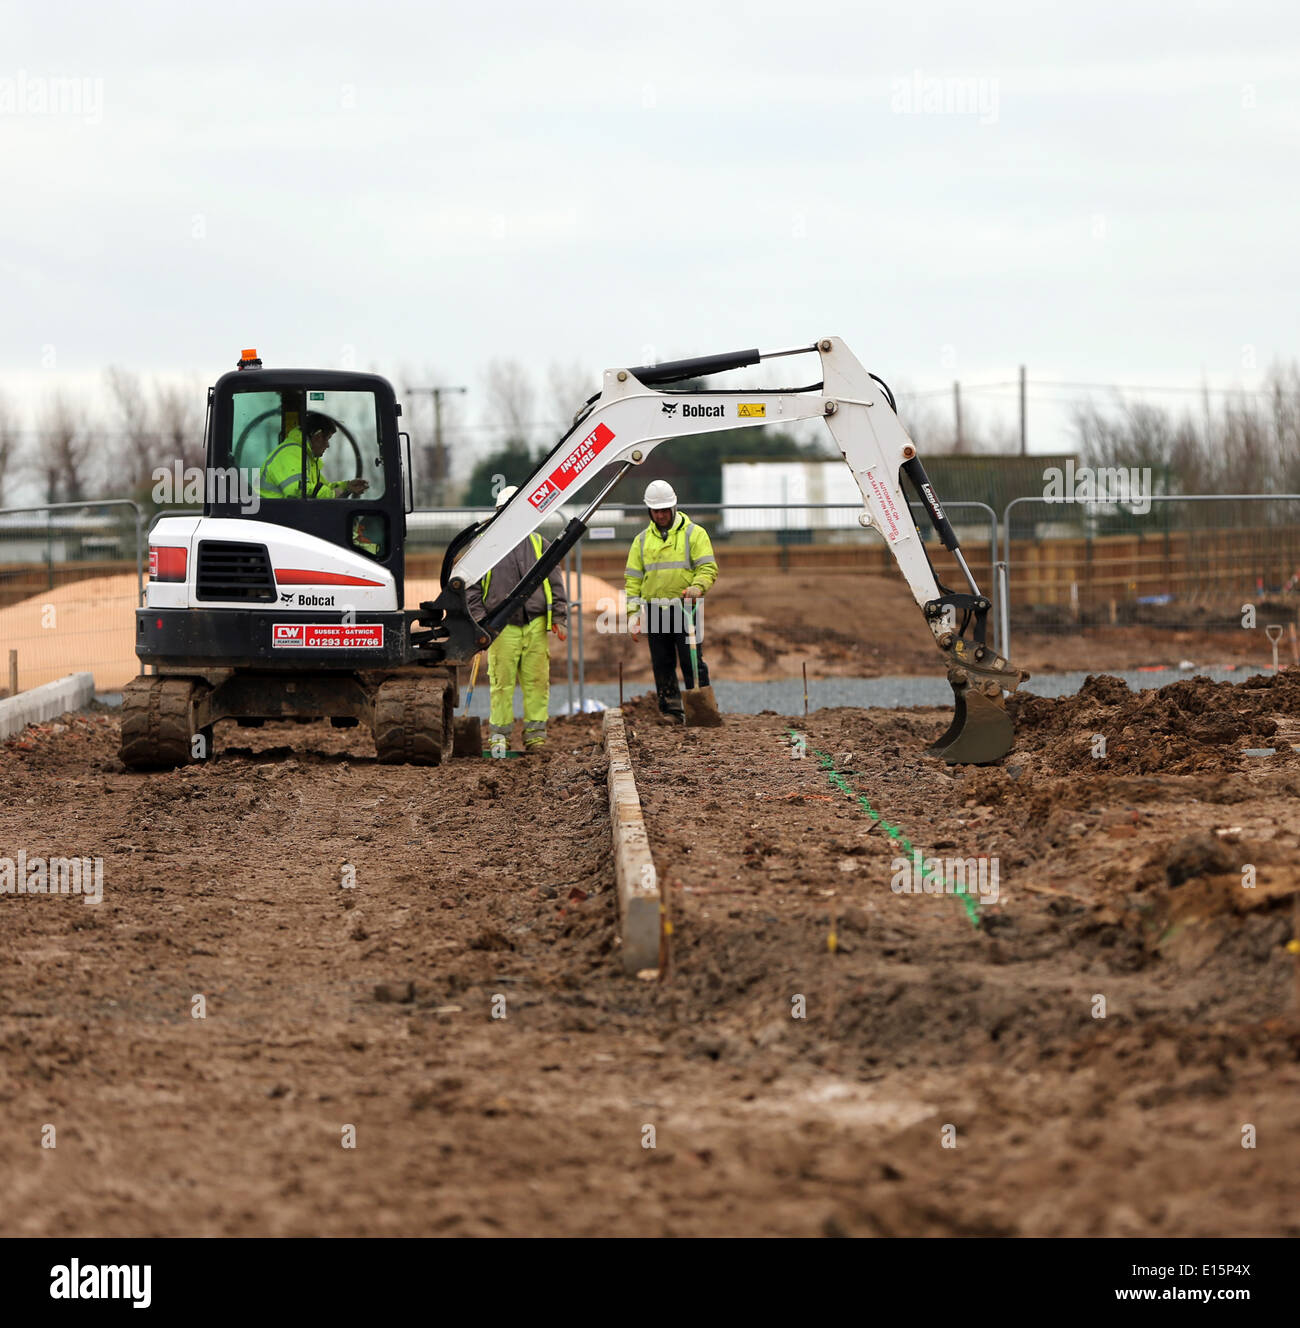 Tradesman workman on a building site in a digger excavating groundwork - Stock Image